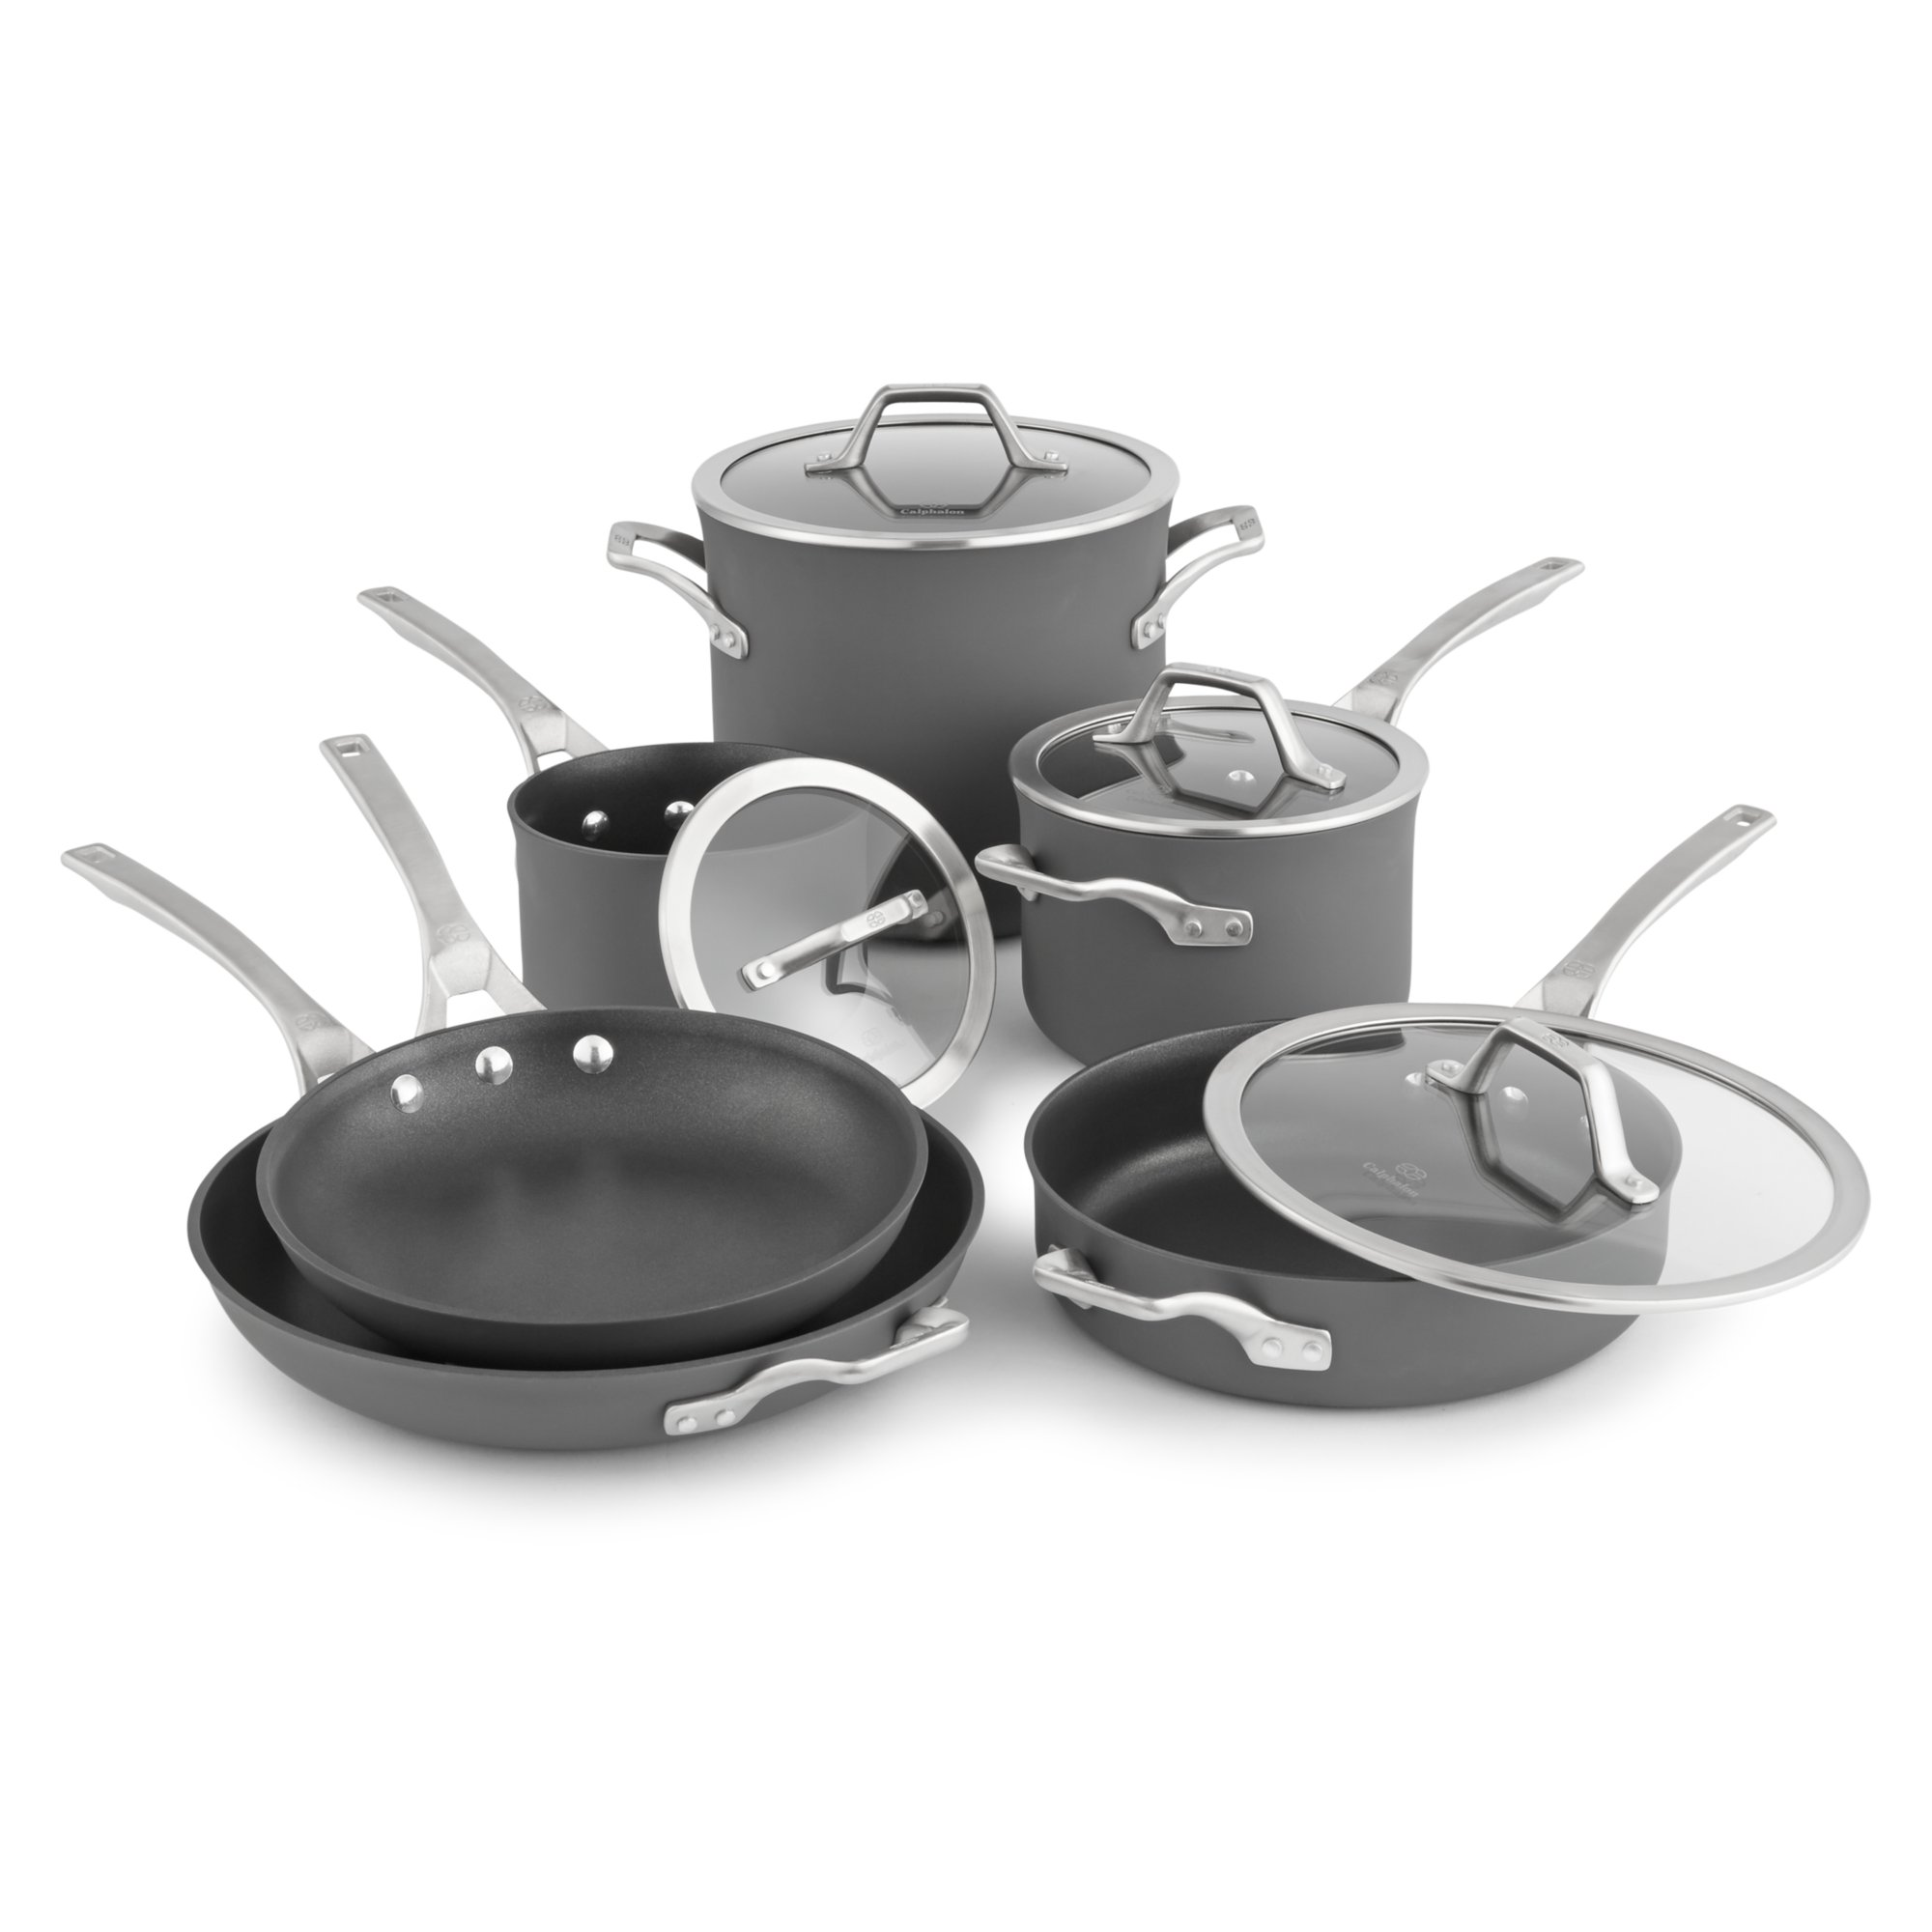 calphalon kitchen essentials stainless steel gray island signature nonstick 10 pc cookware set